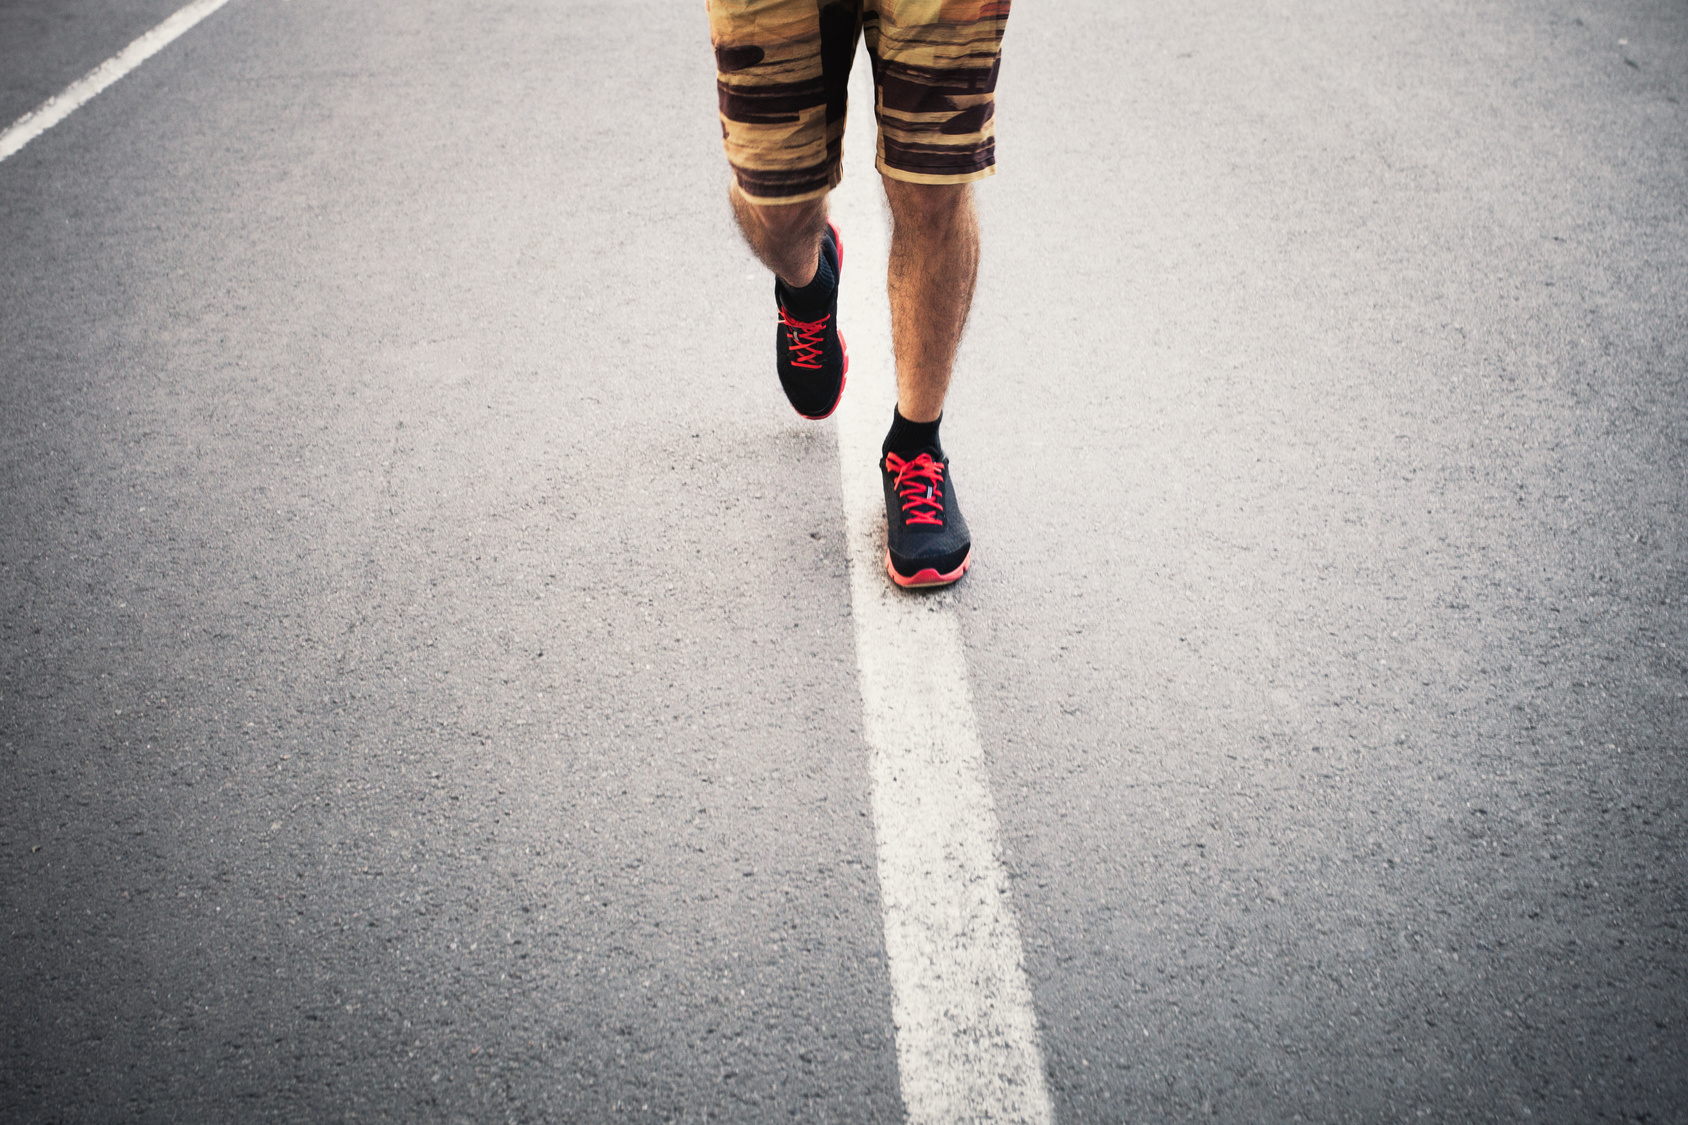 picutre of runners legs